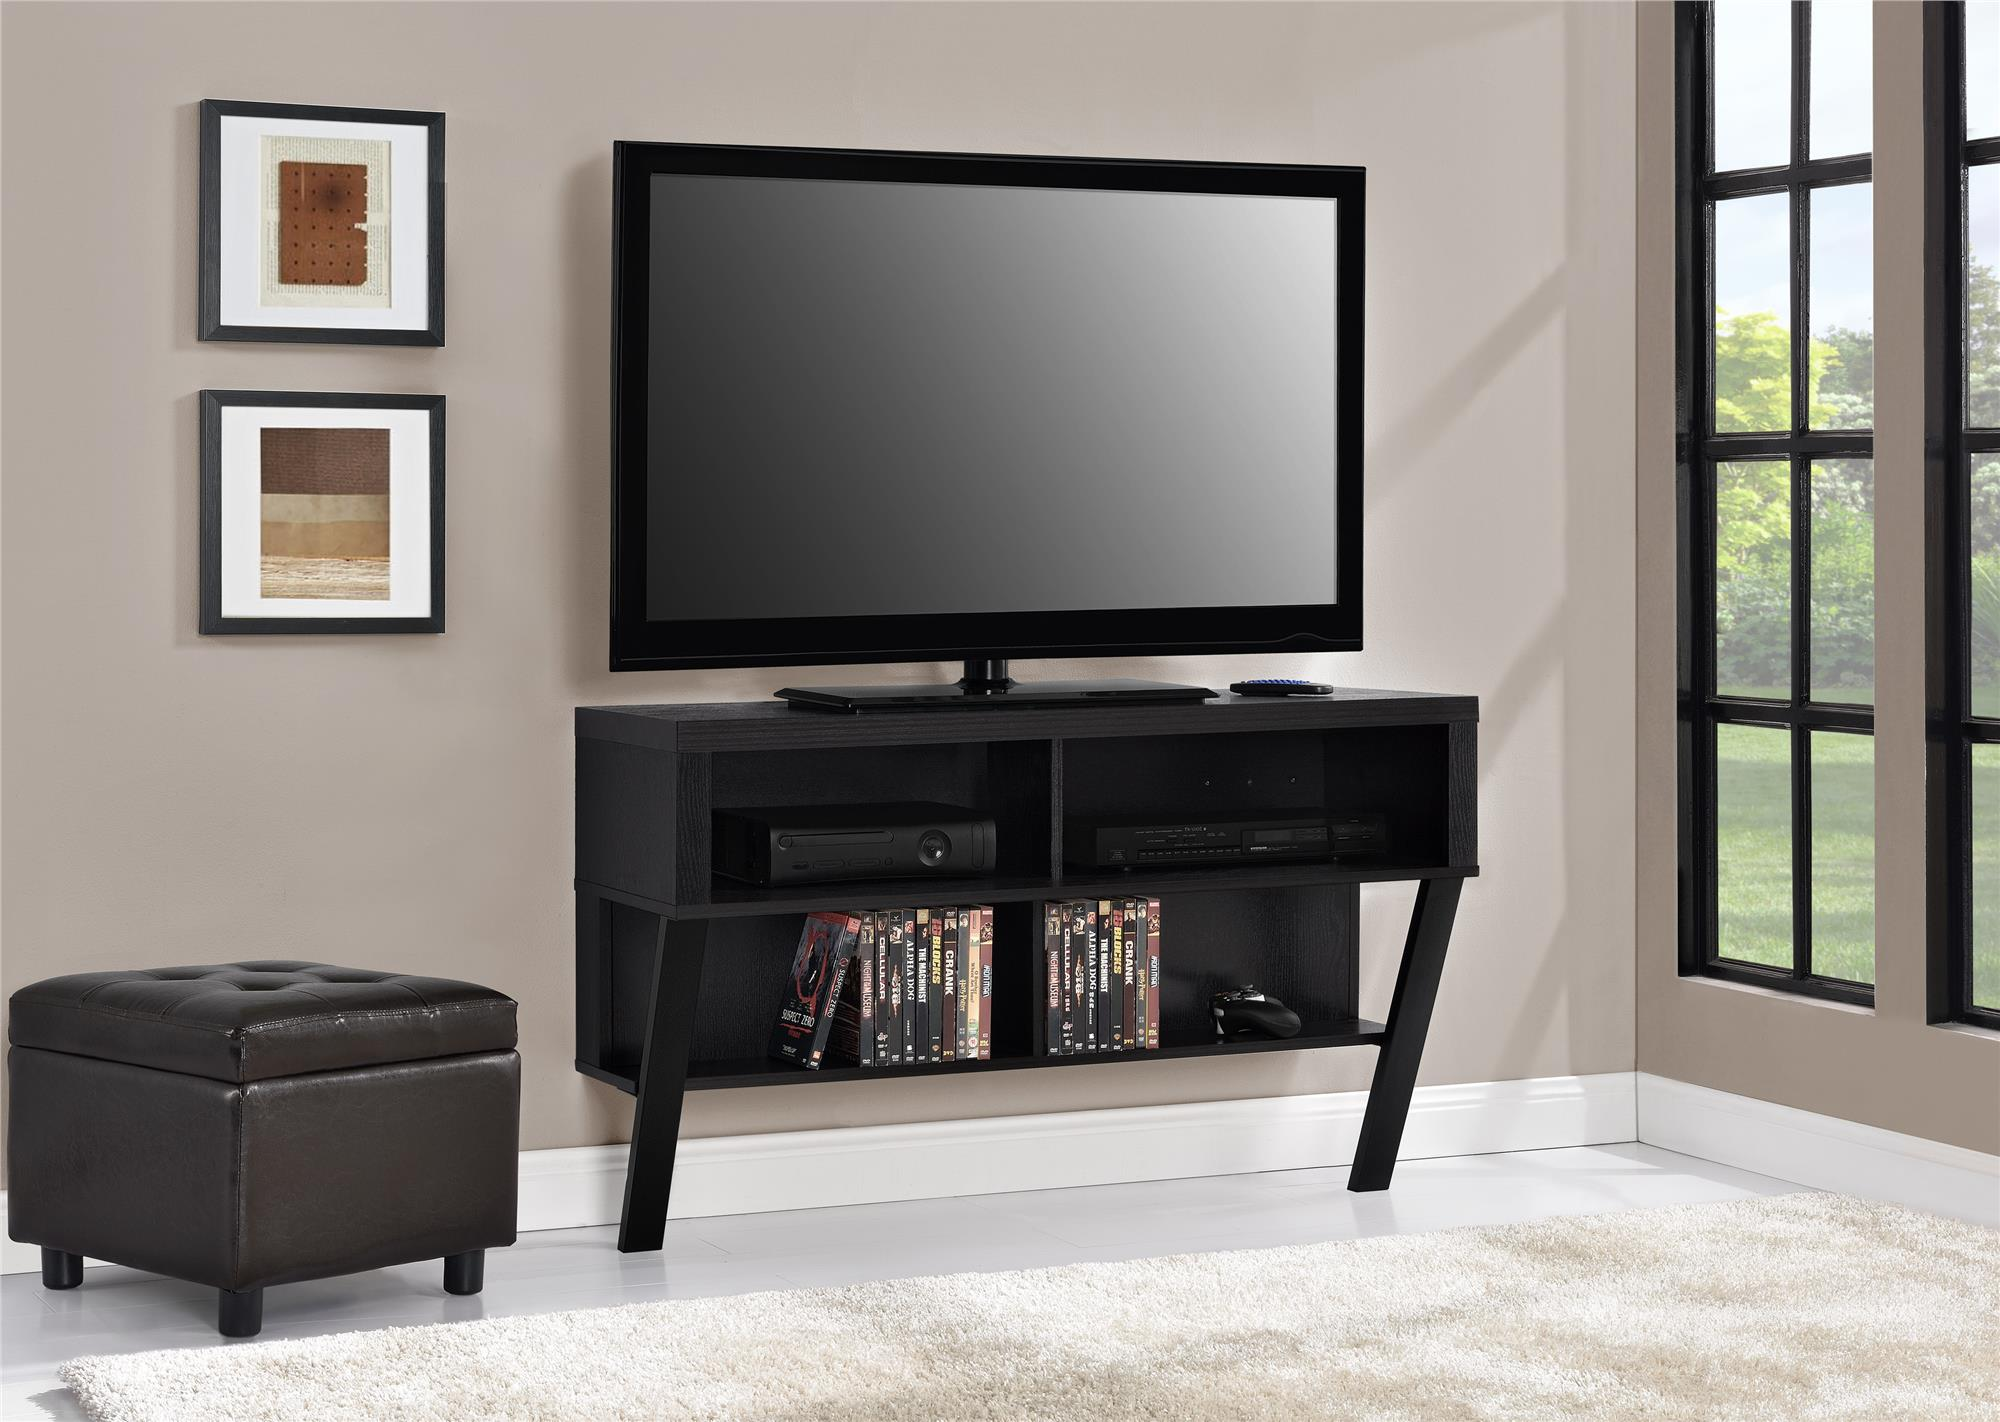 Kmart Tv Mount Space Saving Tv Stand Kmart